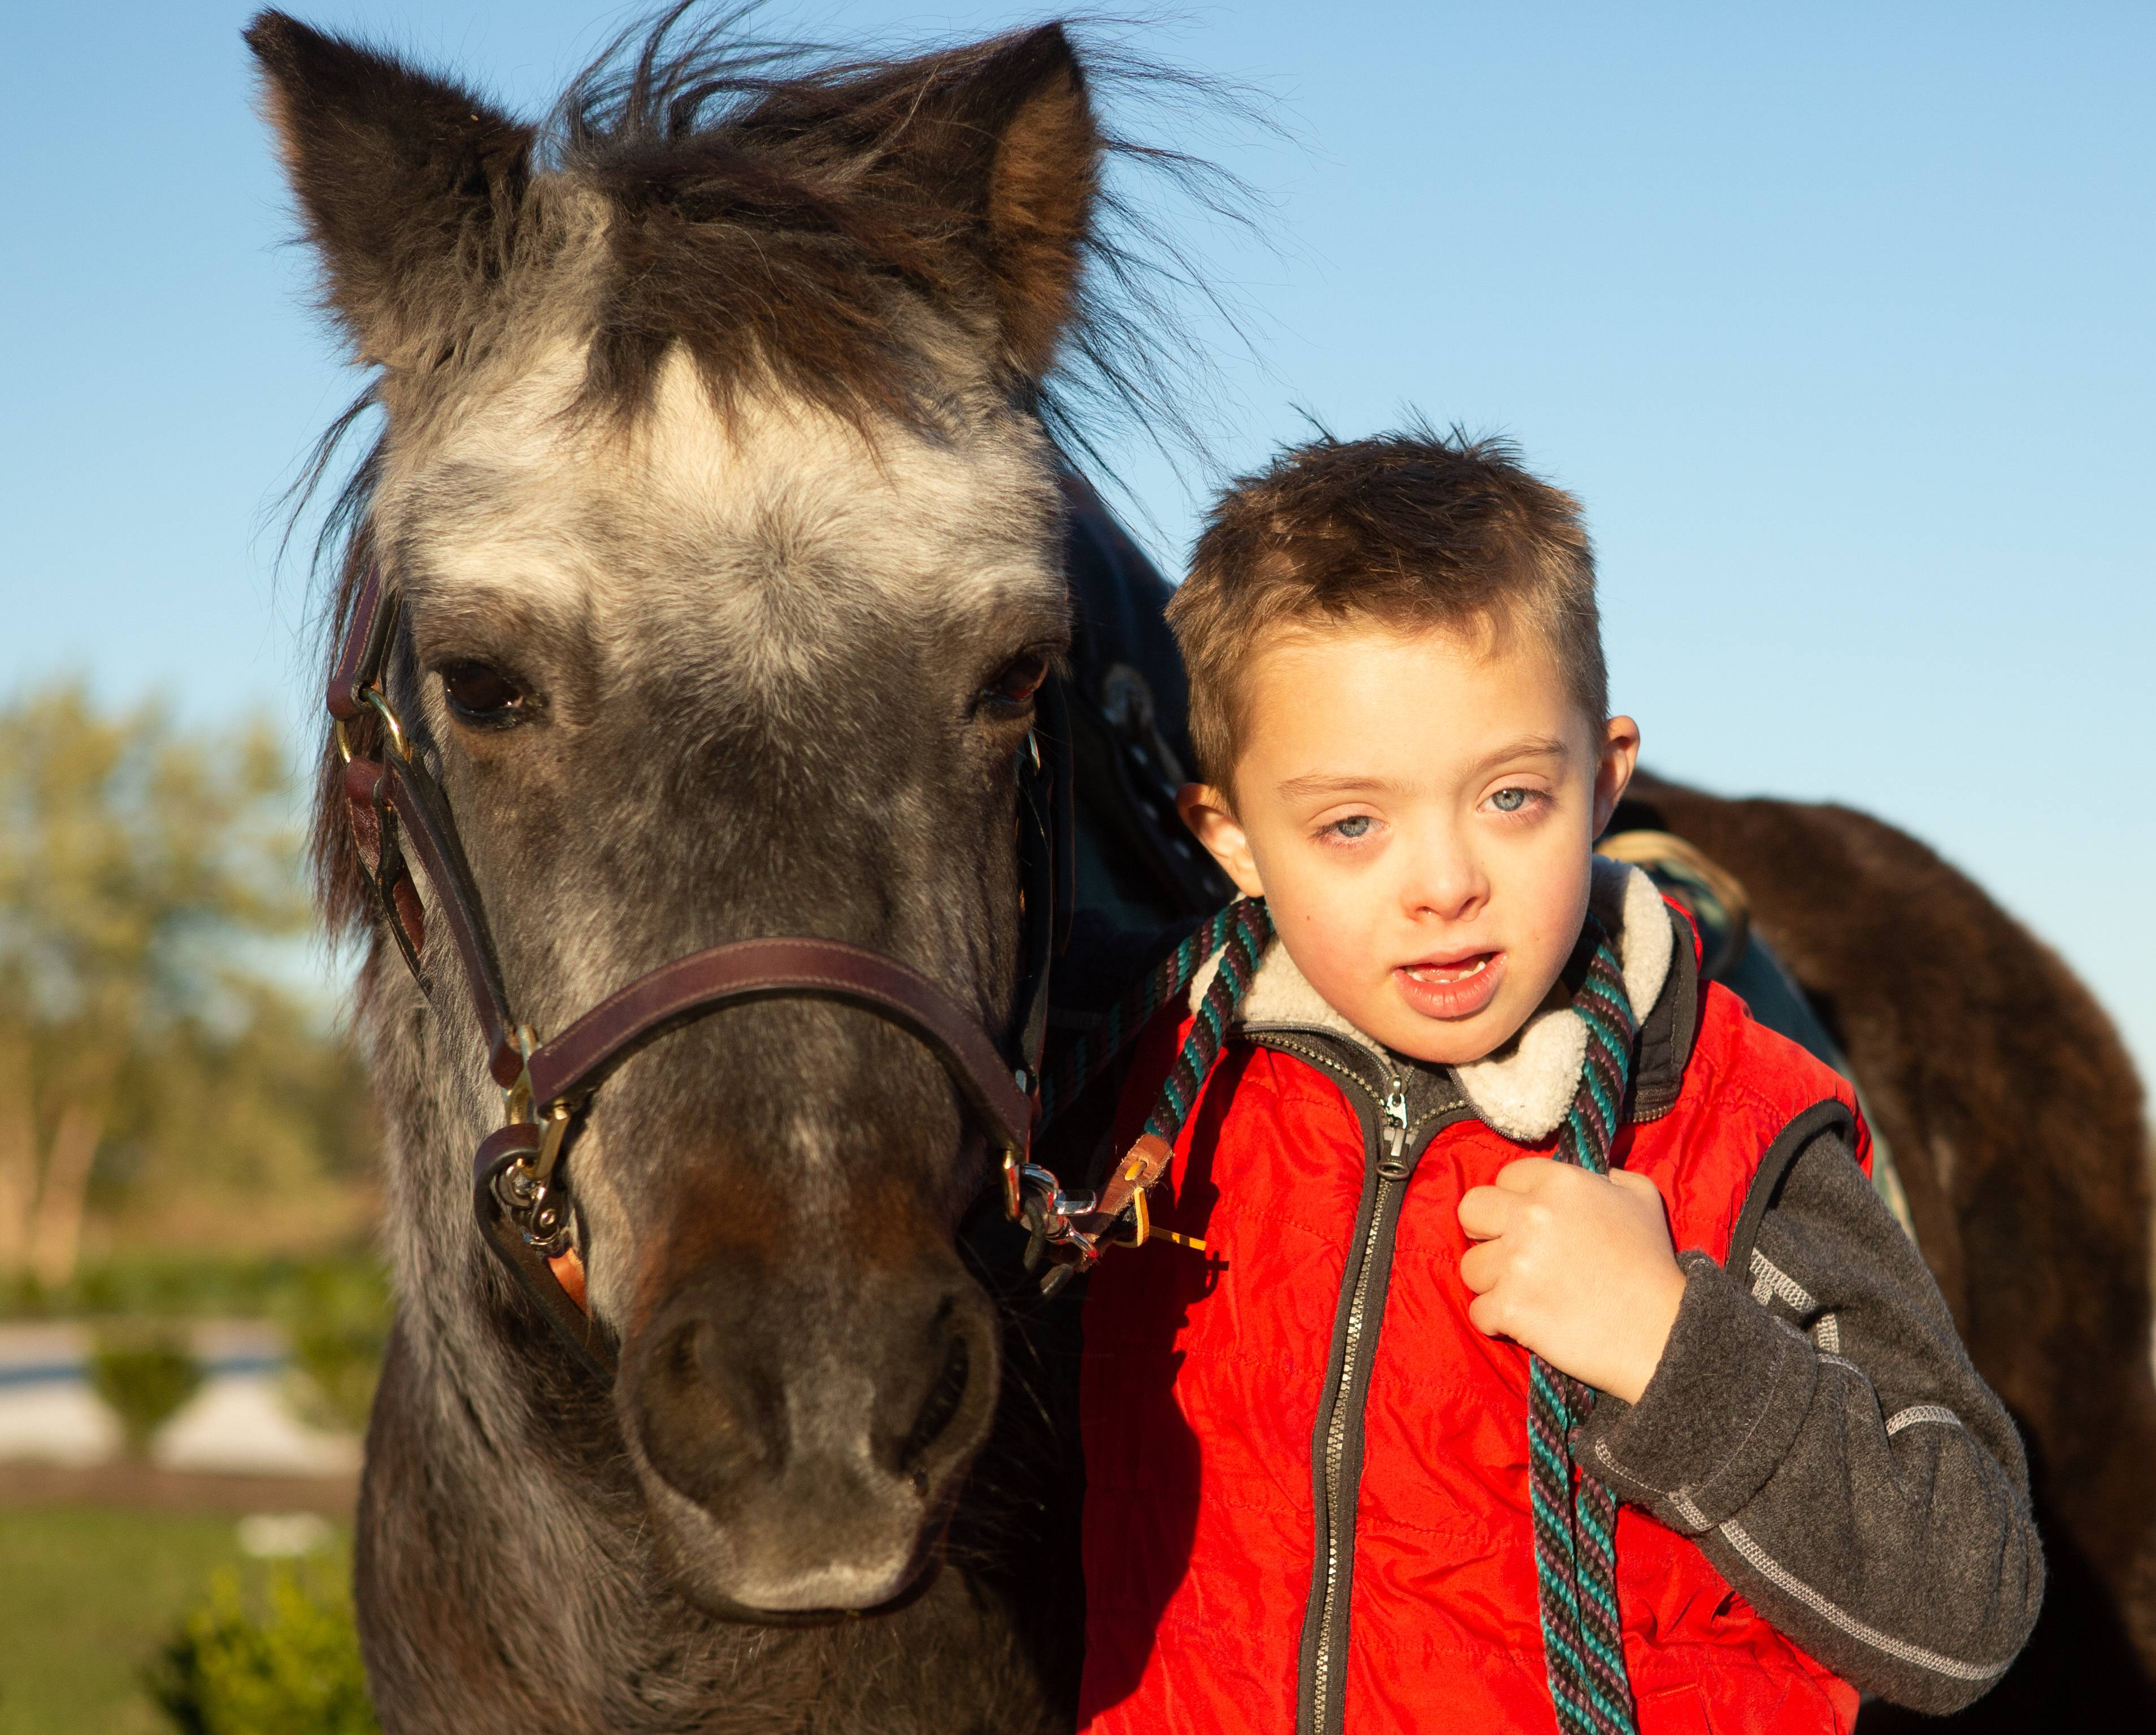 Josh Martin of St. Charles and his equine therapy pony Berry star in a documentary that will premiere Jan. 23 at the Arcada Theatre.